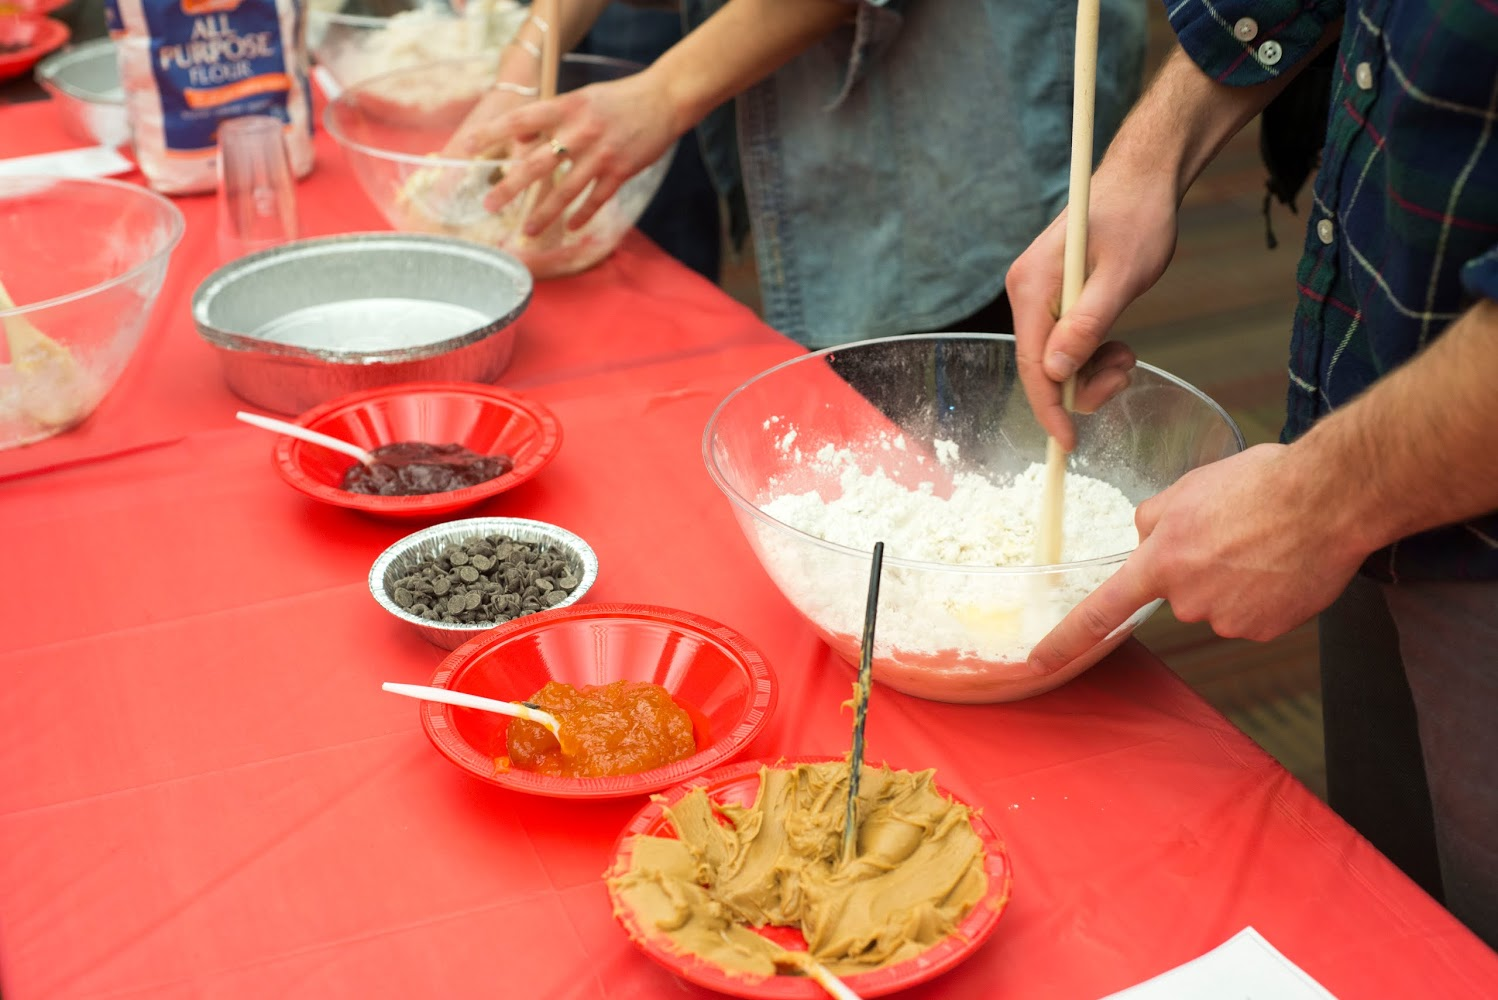 """We held the event as a way for students to get together to celebrate the holiday as a community,"" Renetzky noted. ""It was great, a nice intimate and exciting positive environment which served as a nice break to midterms stress. ...Both Jews and non-Jews alike came by to make some Hamantaschen and learn about why we make them in the first place. I'd say the event was definitely a success."""